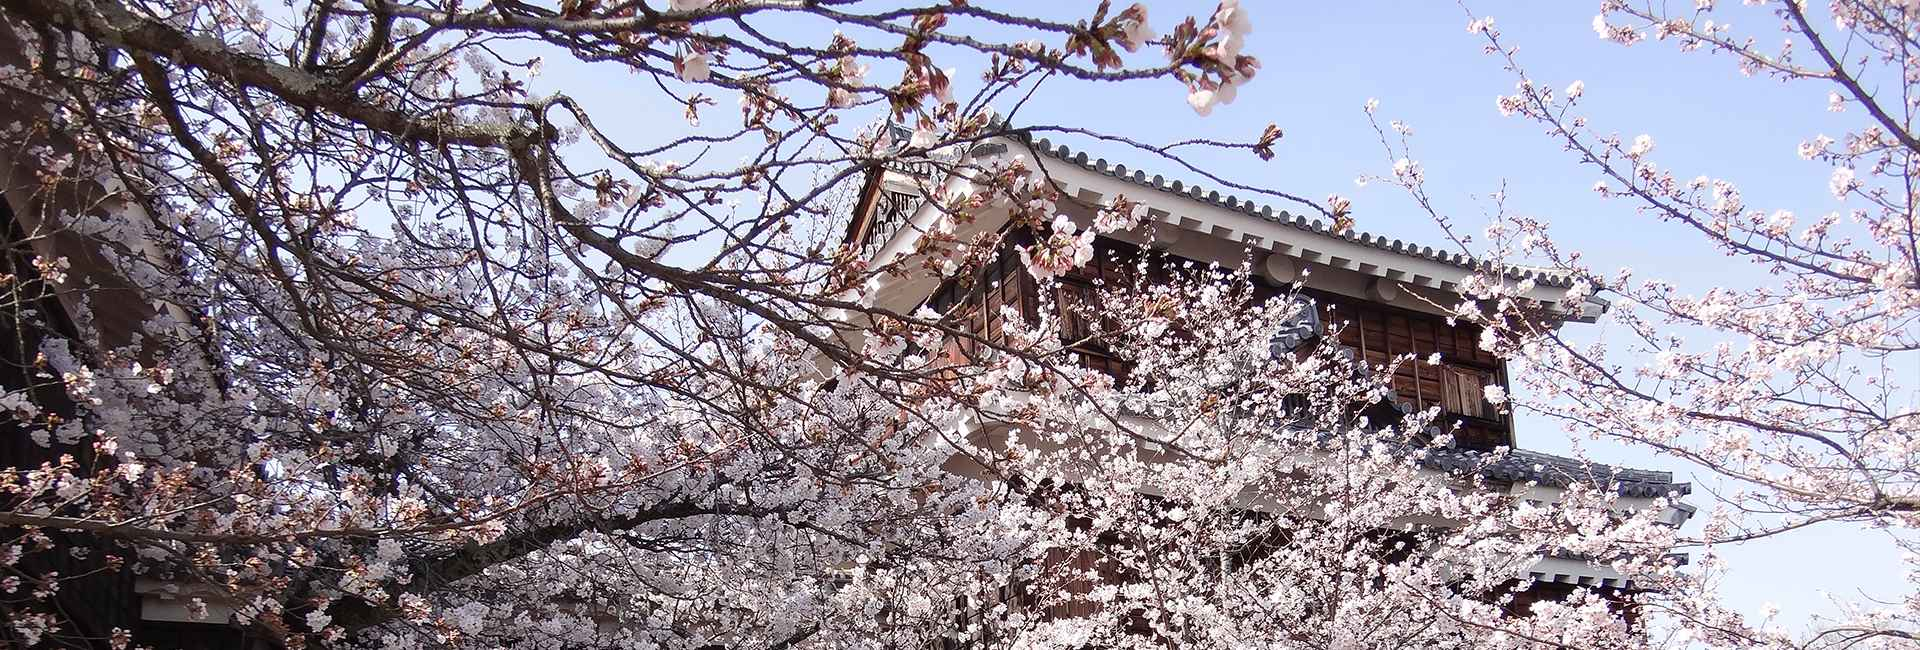 Matsuyama castle and cherry blossoms